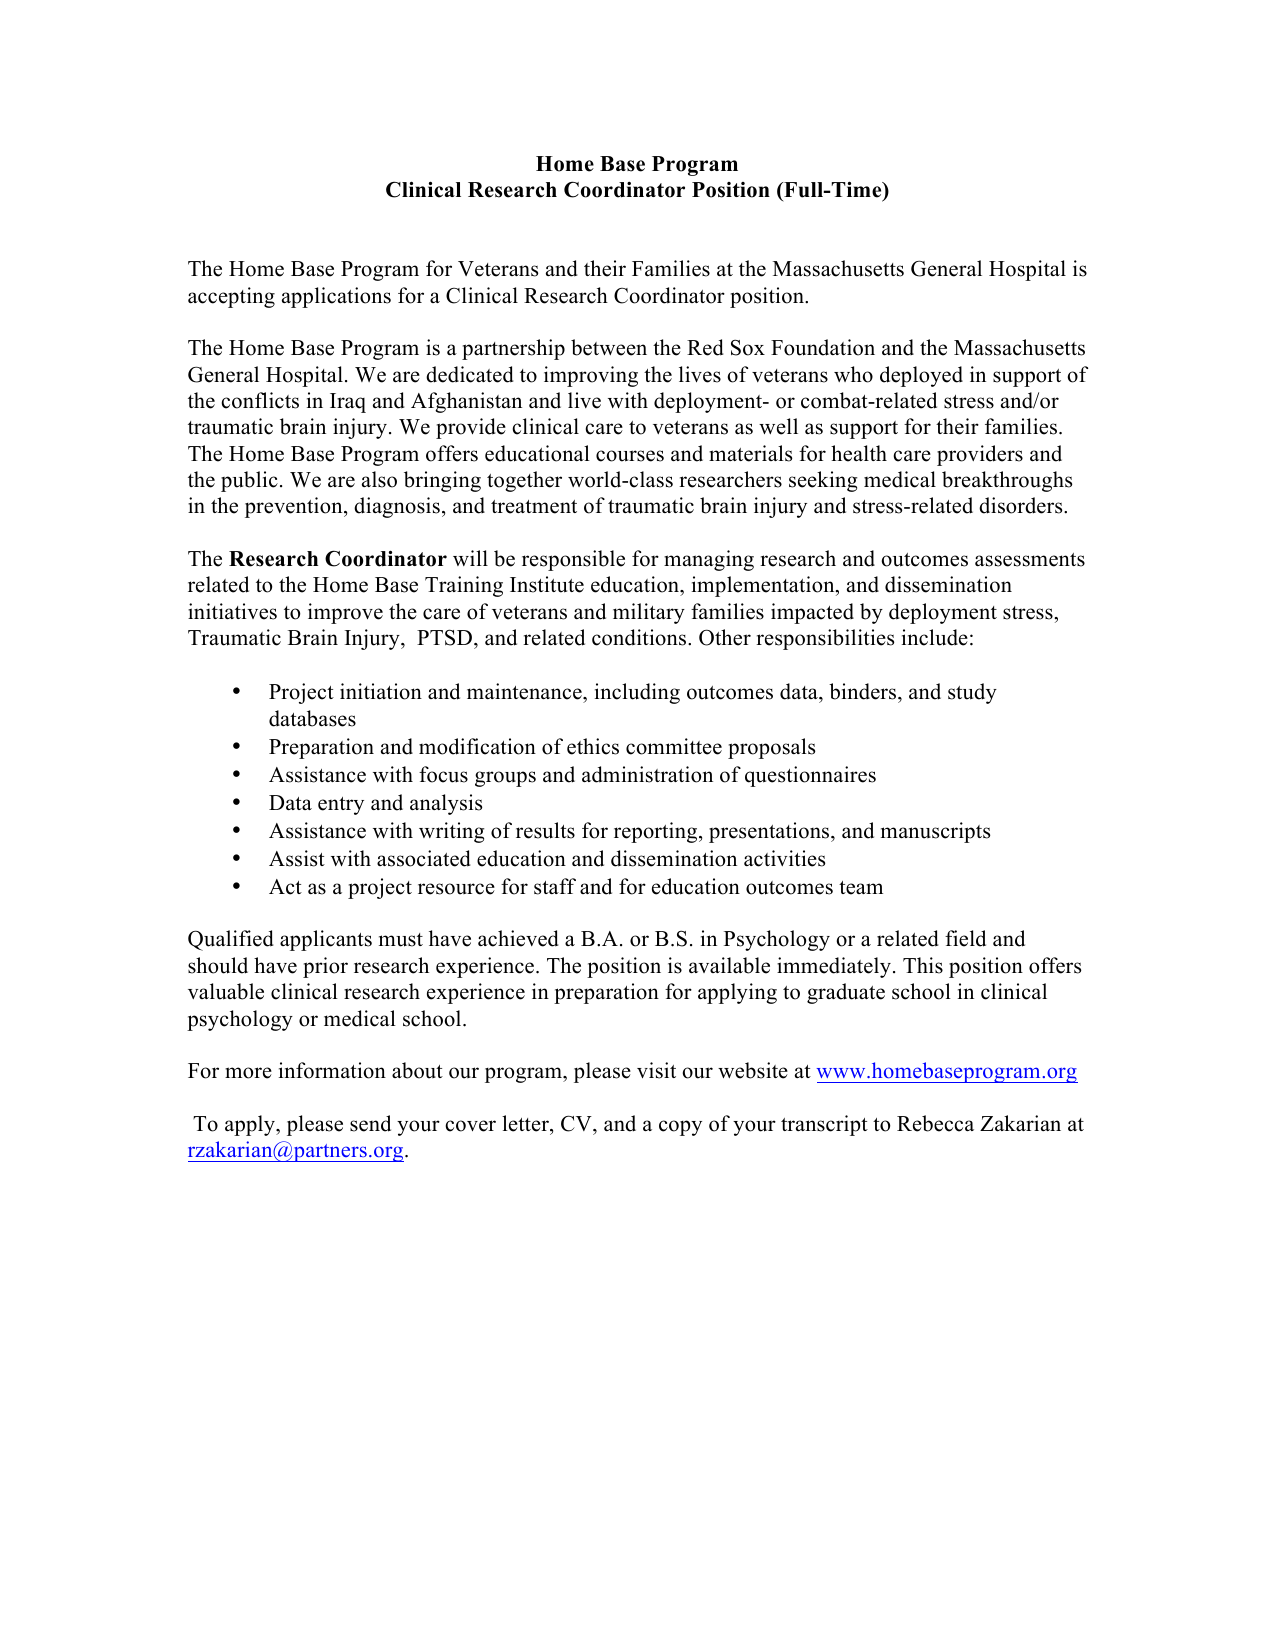 Home Base Program Clinical Research Coordinator Position ...